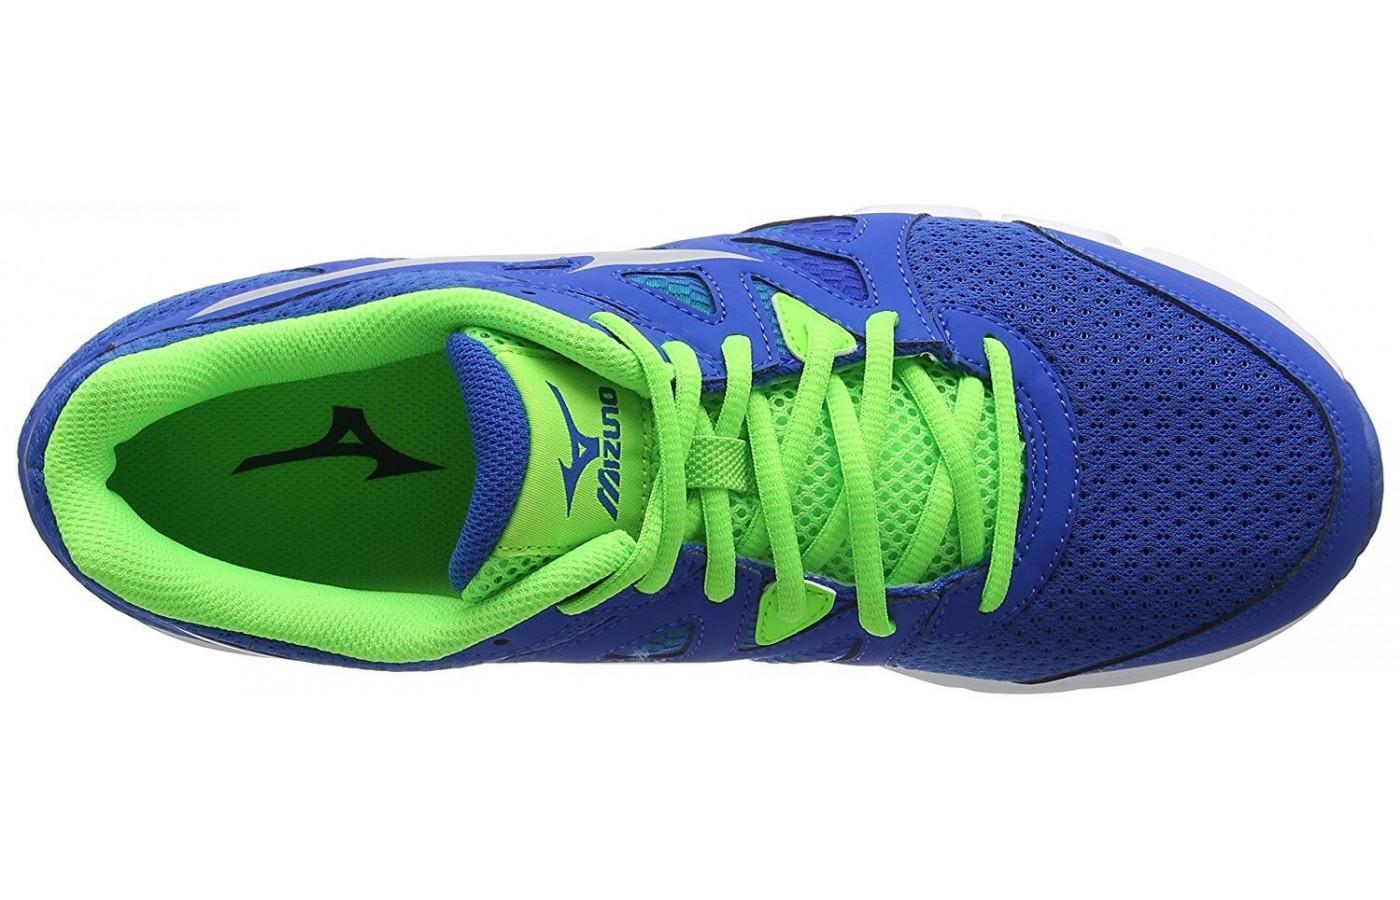 Mizuno Synchro MD has a breathable mesh upper